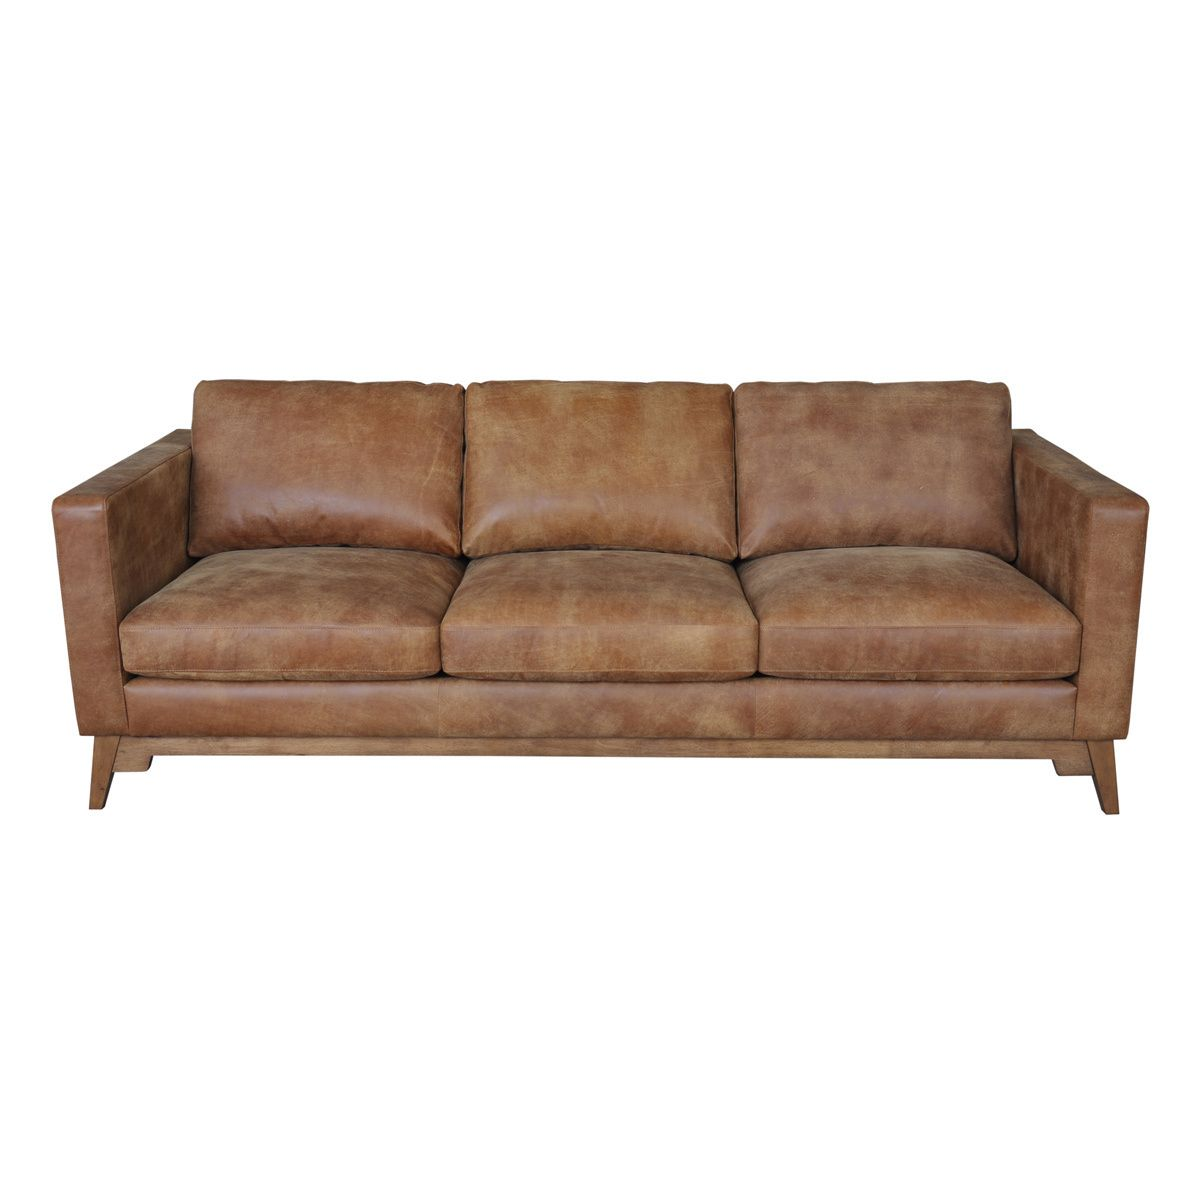 This Handsome Filmore Sofa Features Beautiful Italian Leather Upholstery With A Semi Aniline Finish In Smooth Tan With A R Tan Leather Sofas Sofa Leather Sofa